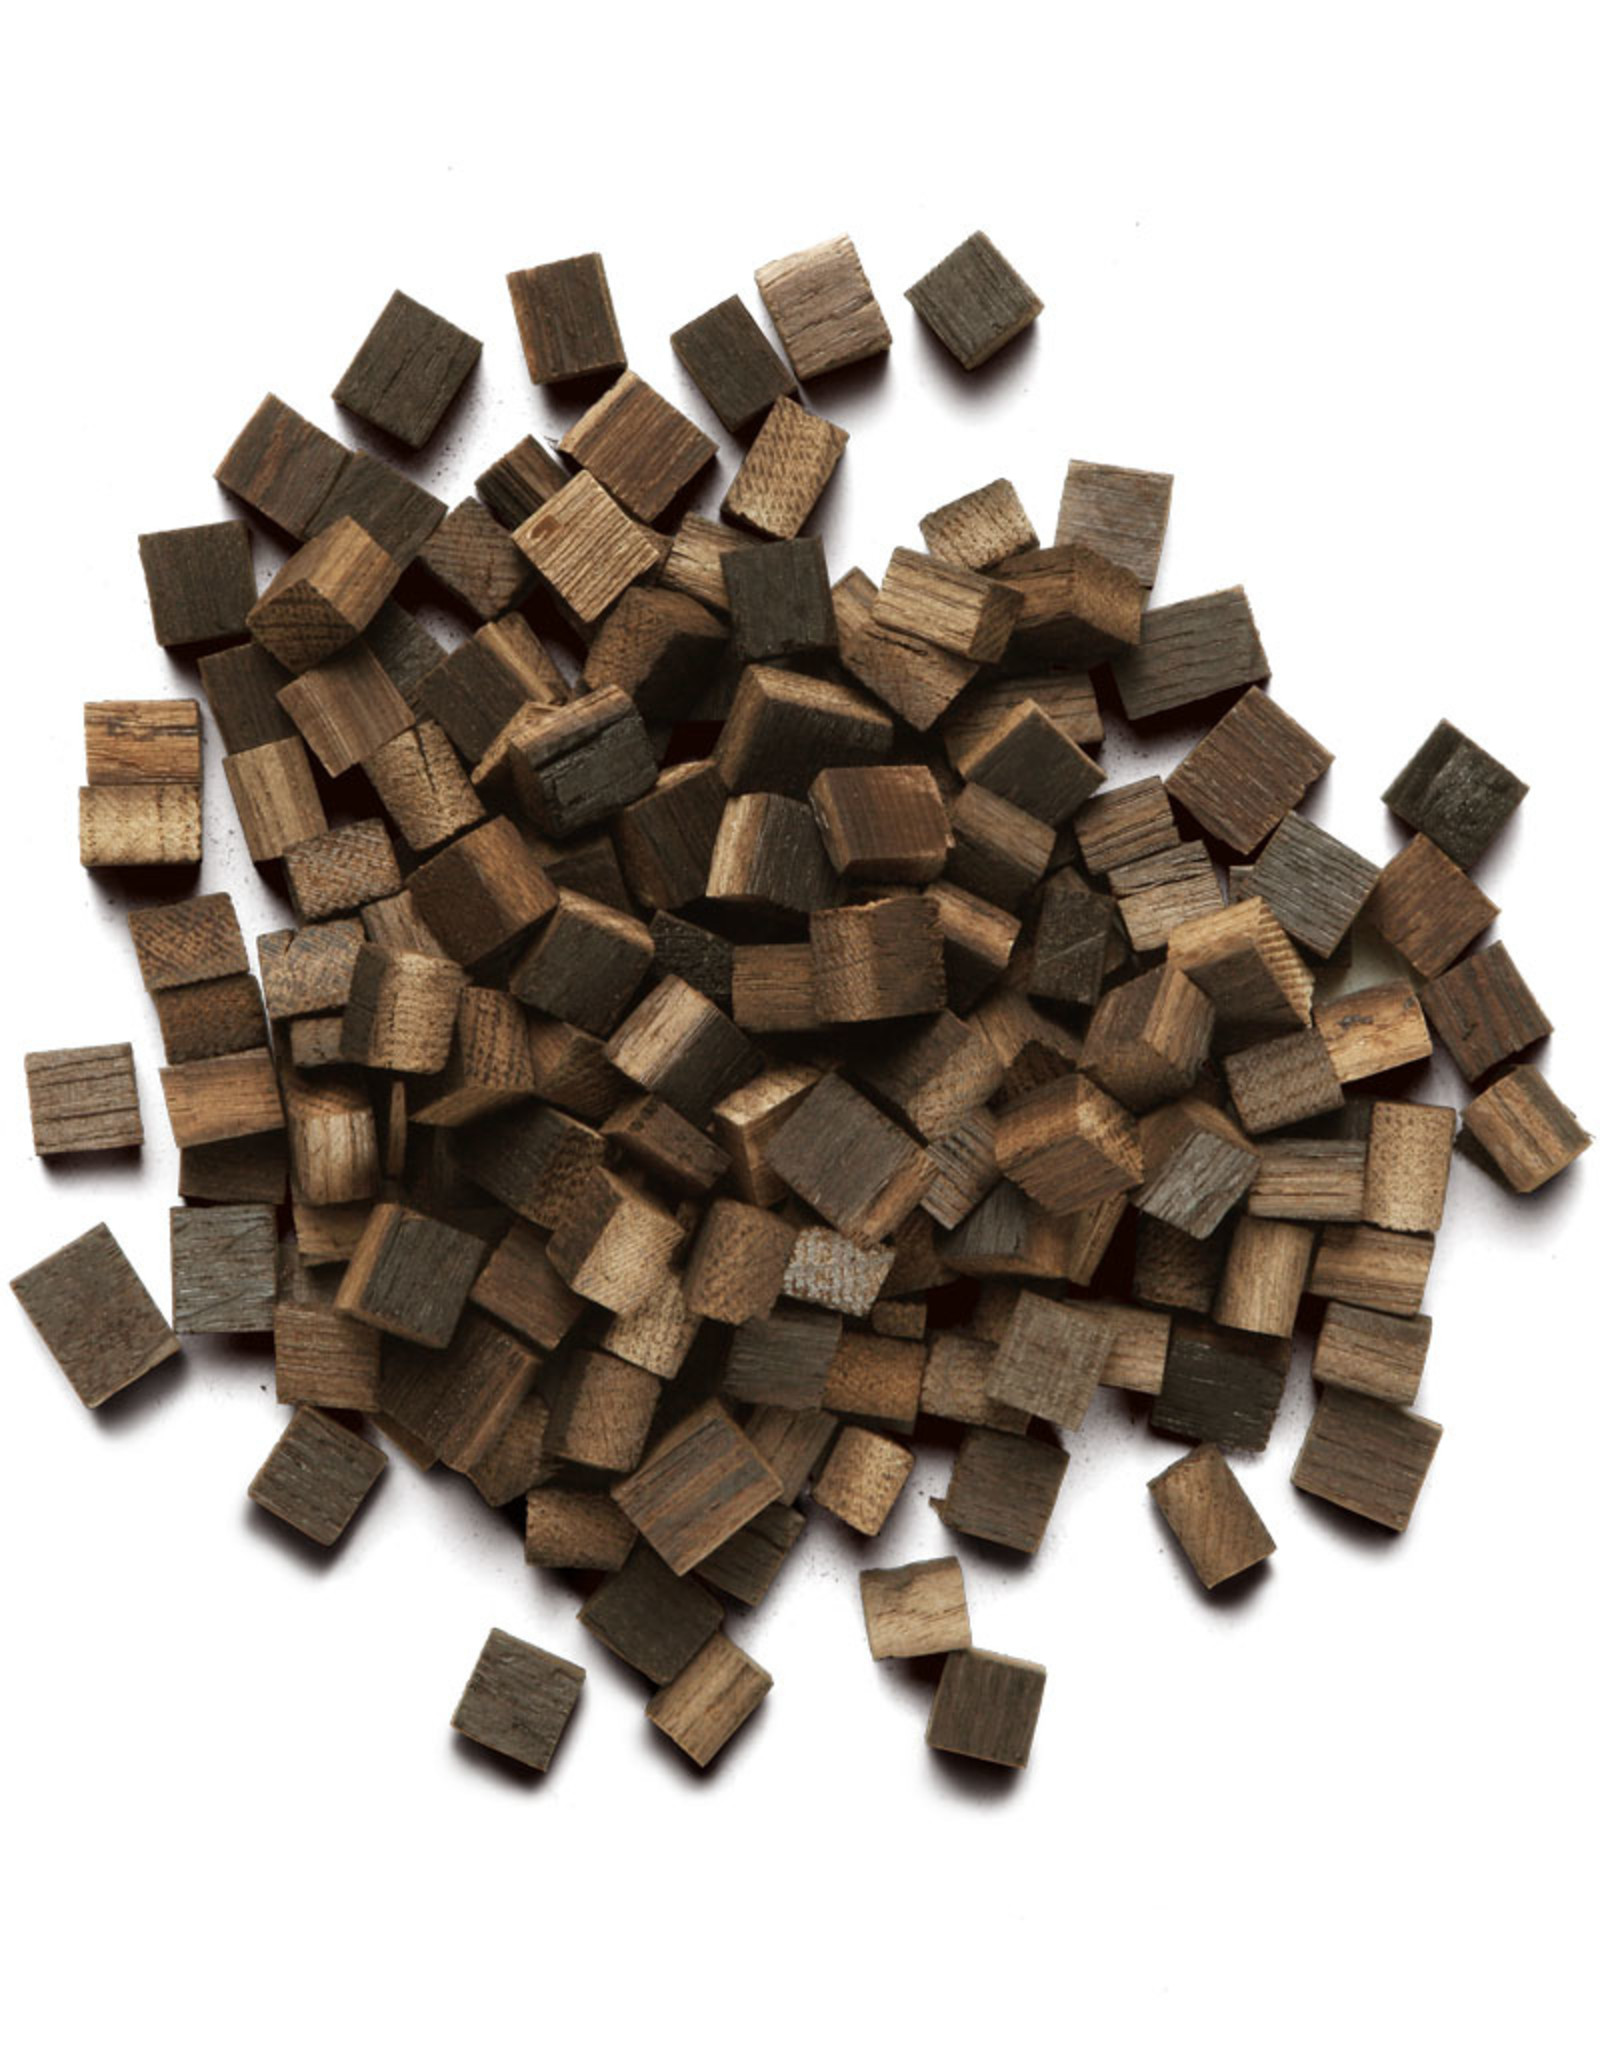 OAK BEANS - WOOD FIRE TOASTING: MEDIUM / MEDIUM +